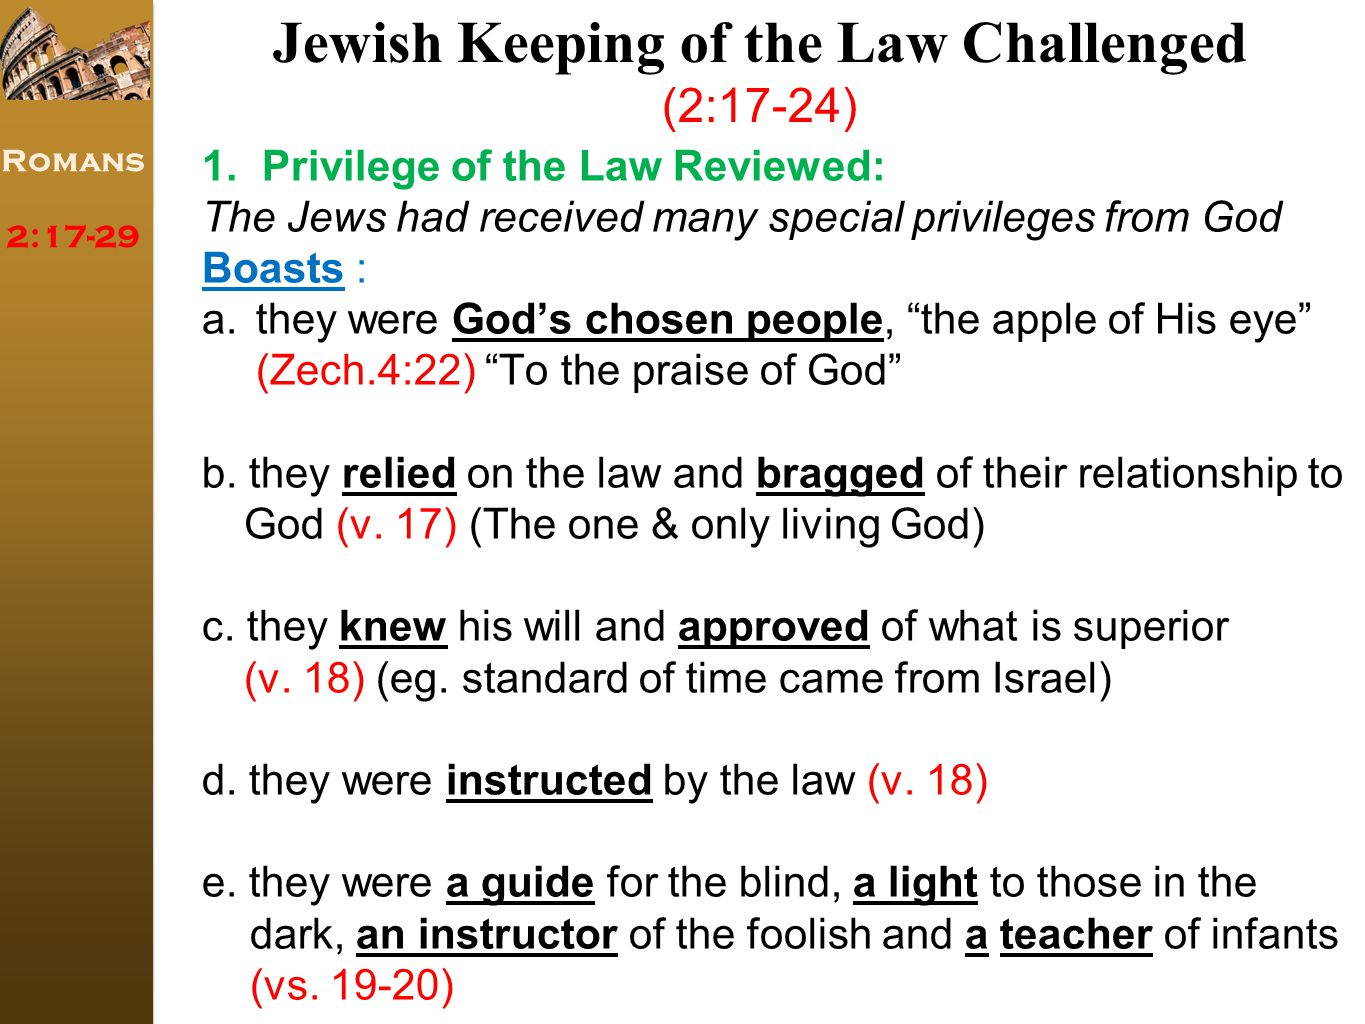 Romans 2:17-29 Jewish Keeping of the Law Challenged (2:17-24) 1.